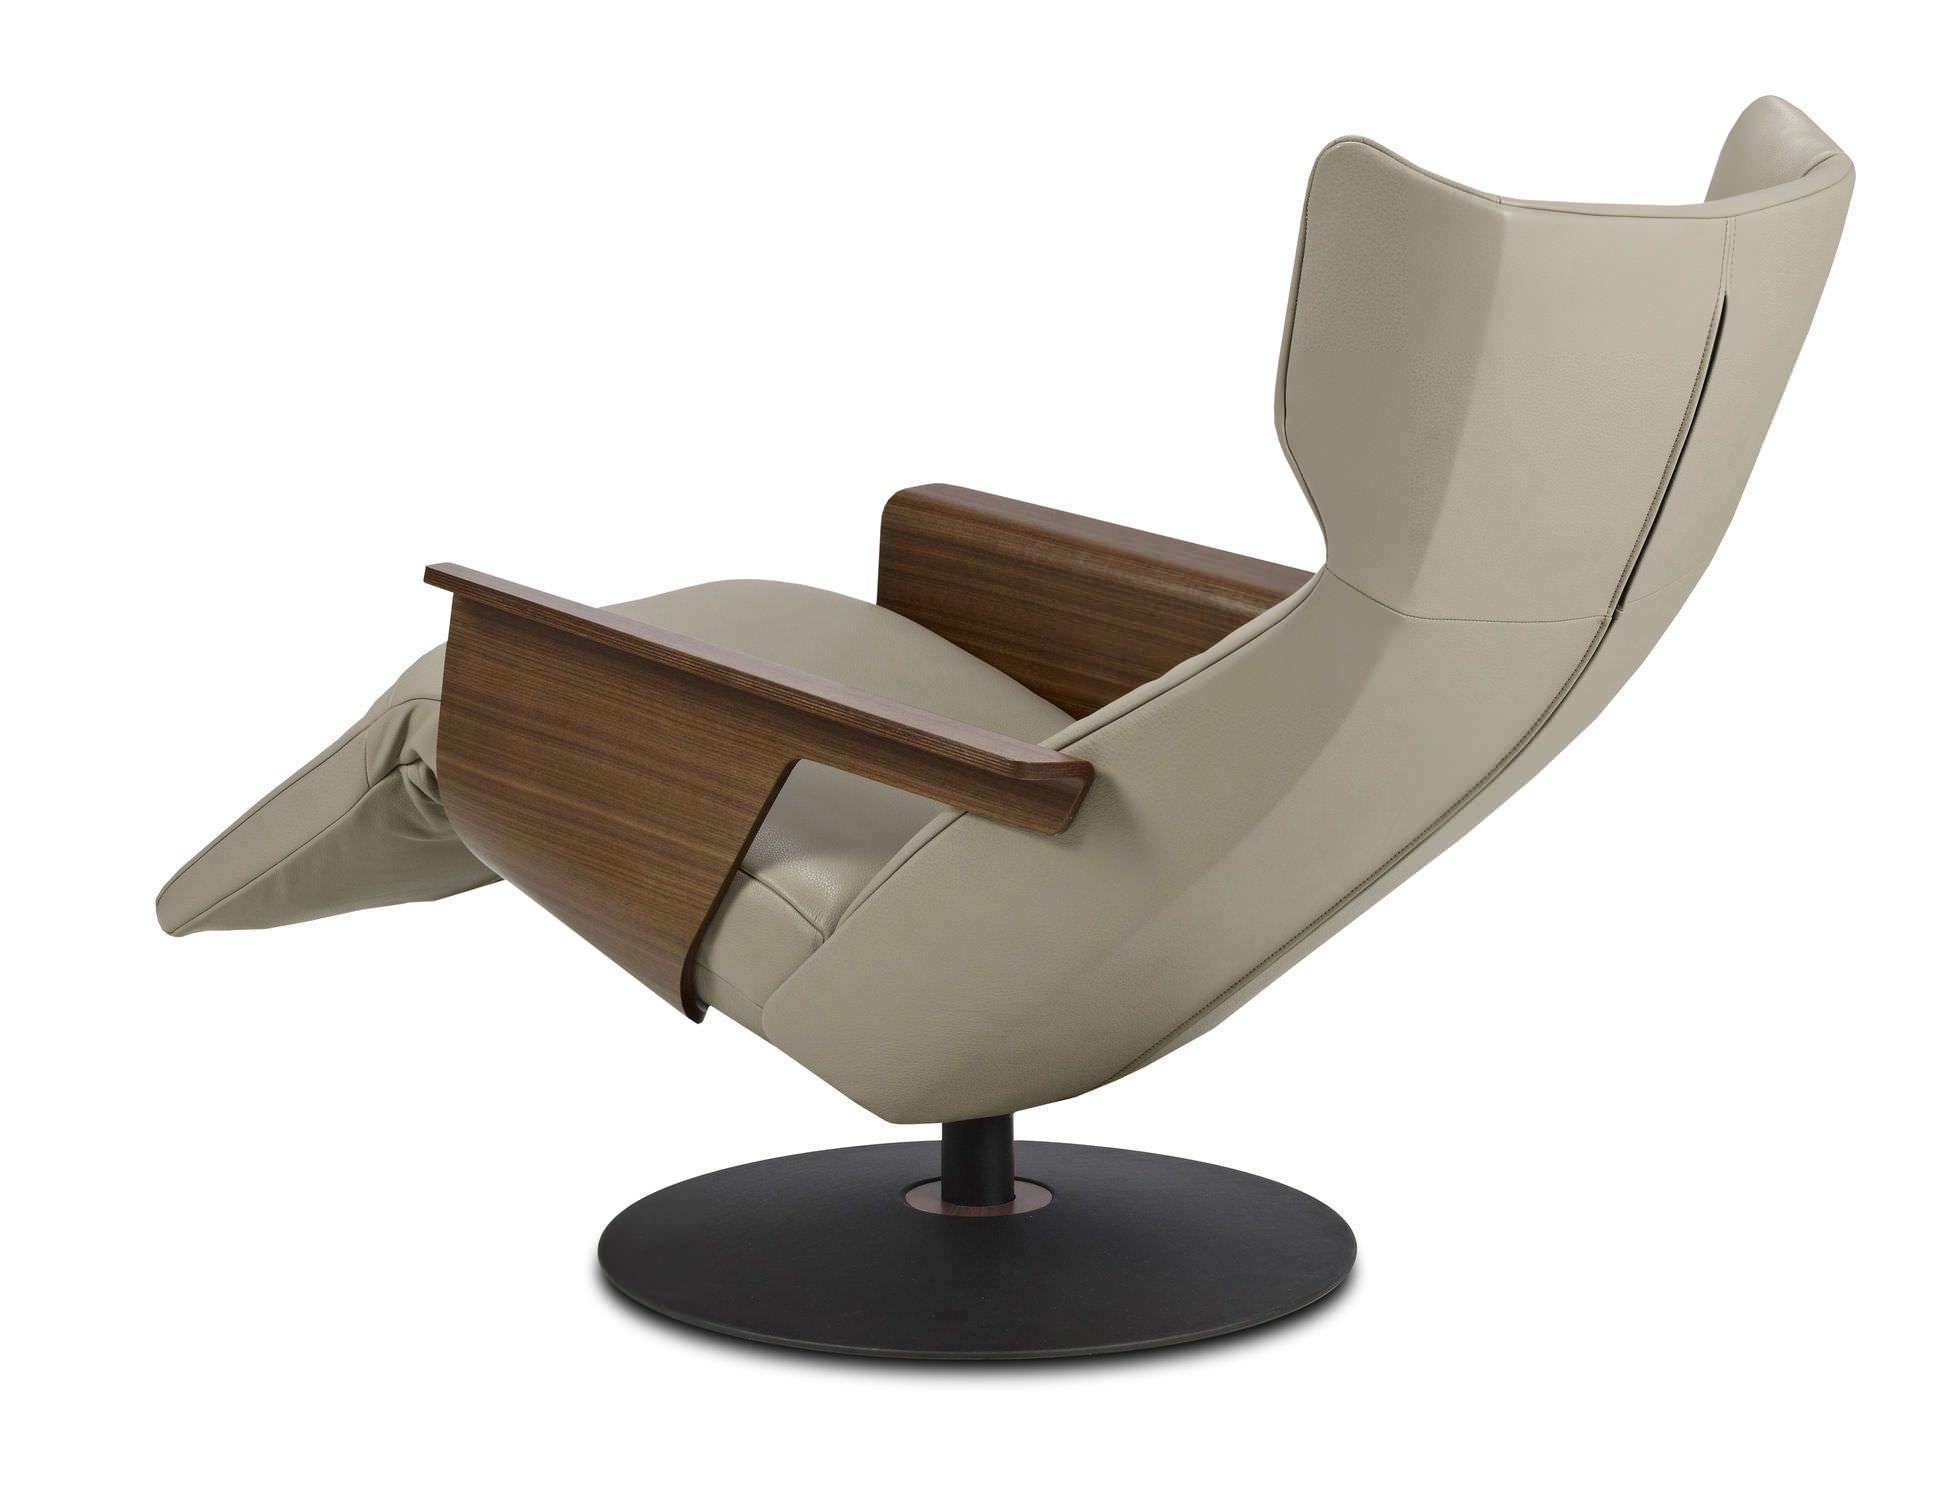 Contemporary Leather Recliner Armchair With Footstool – Orea In Katrina Beige Swivel Glider Chairs (View 16 of 25)